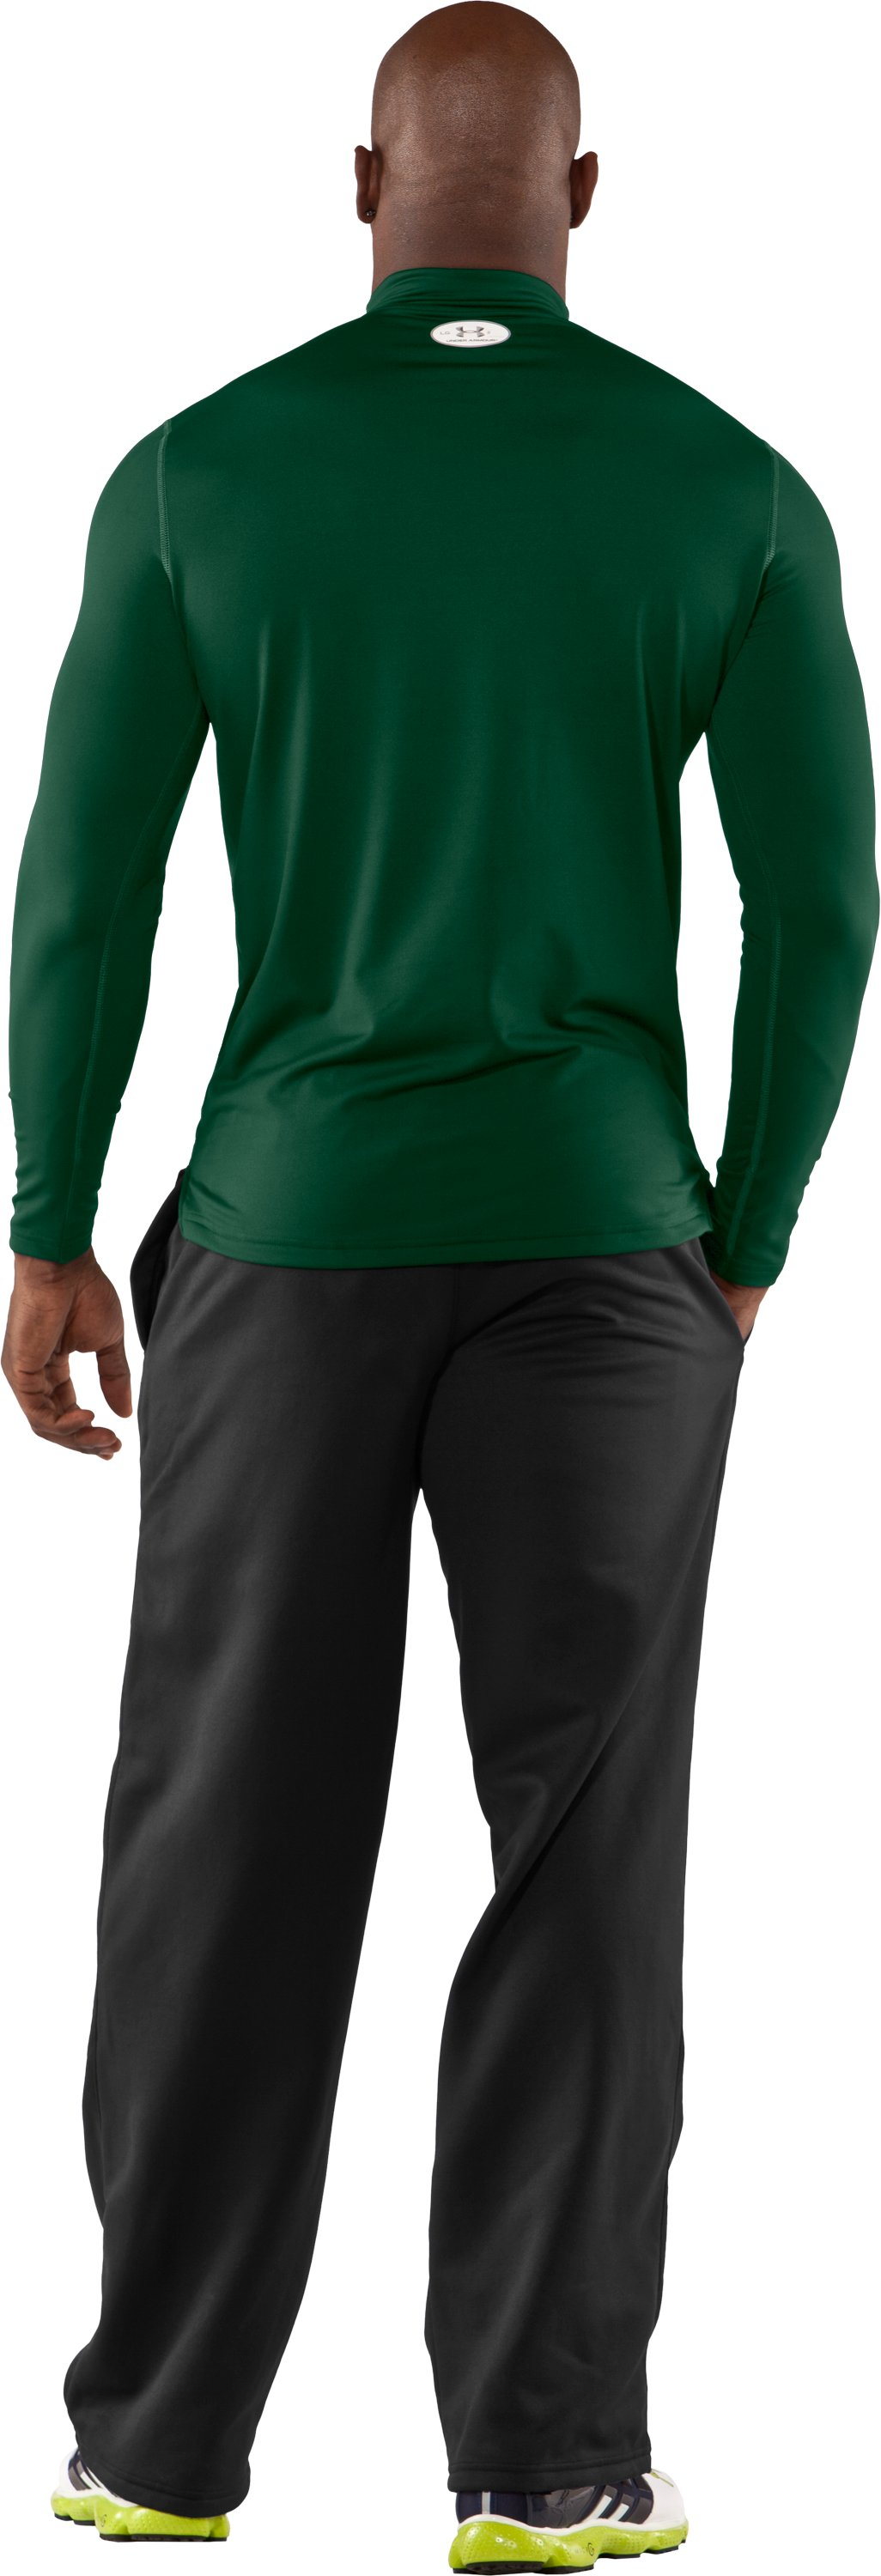 Men's ColdGear® Fitted Long Sleeve Mock, Forest Green, Back